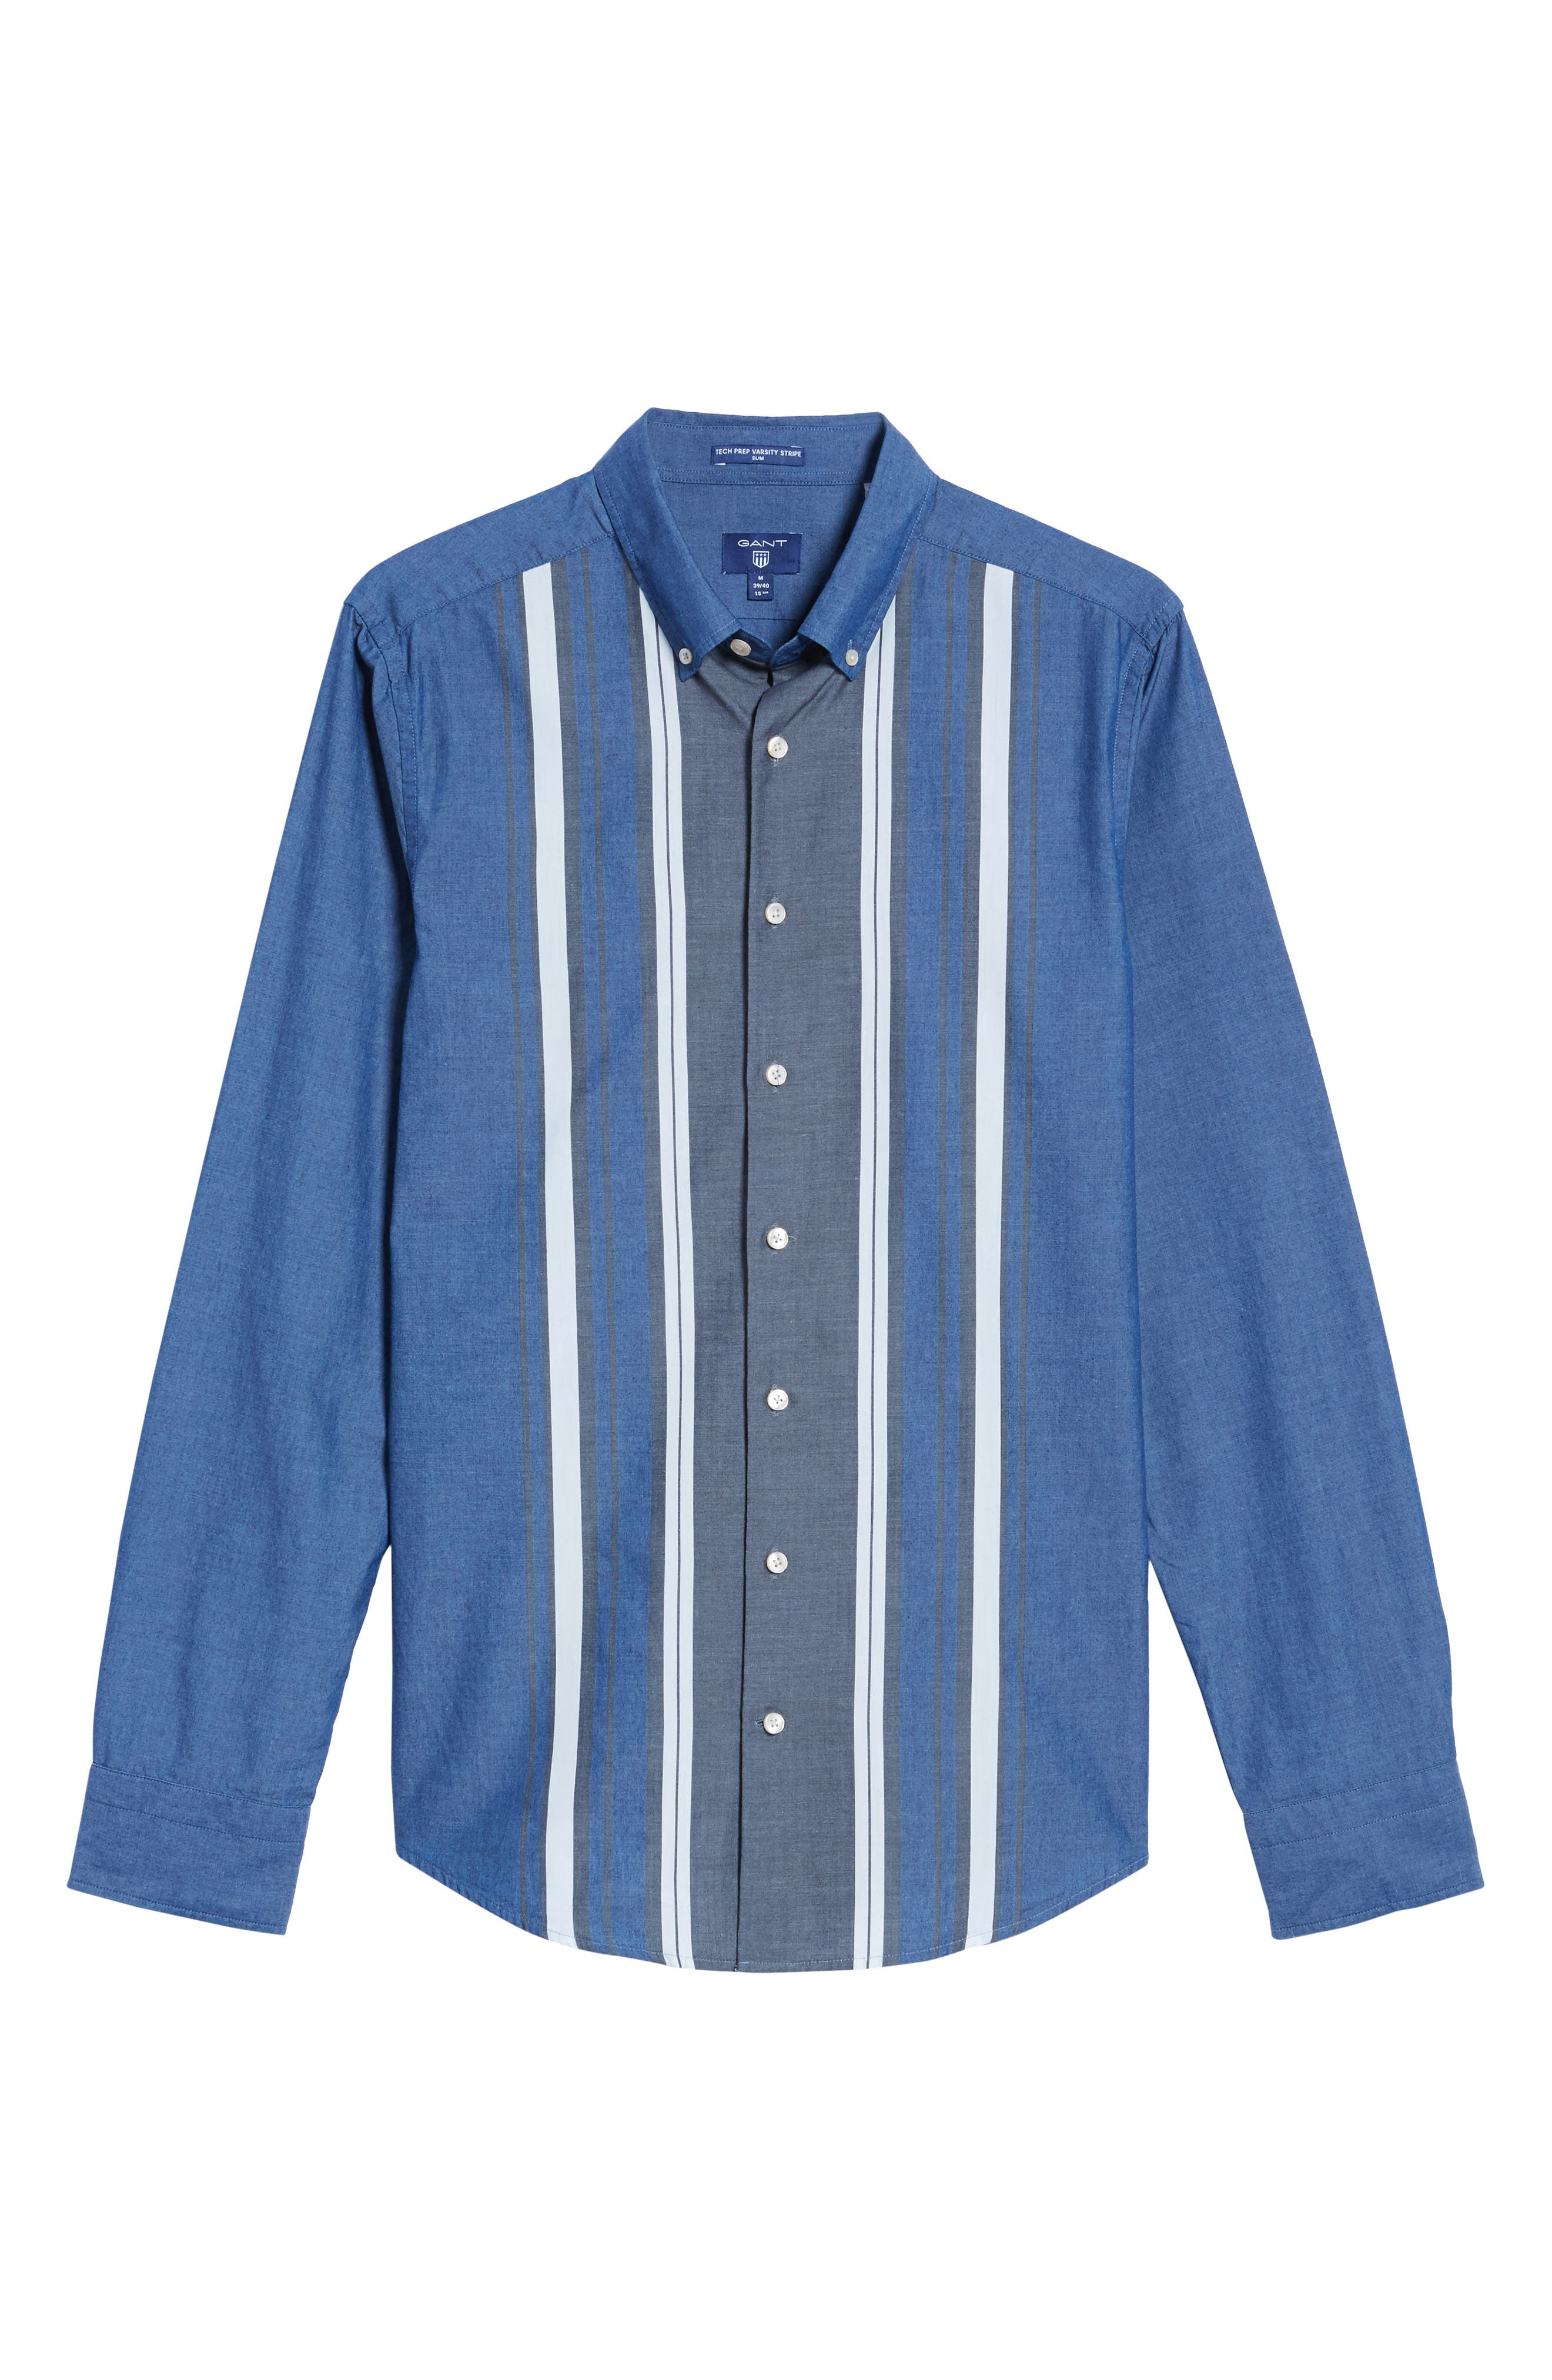 Tech Slim Fit Varsity Stripe Sport Shirt,                             Alternate thumbnail 6, color,                             Evening Blue